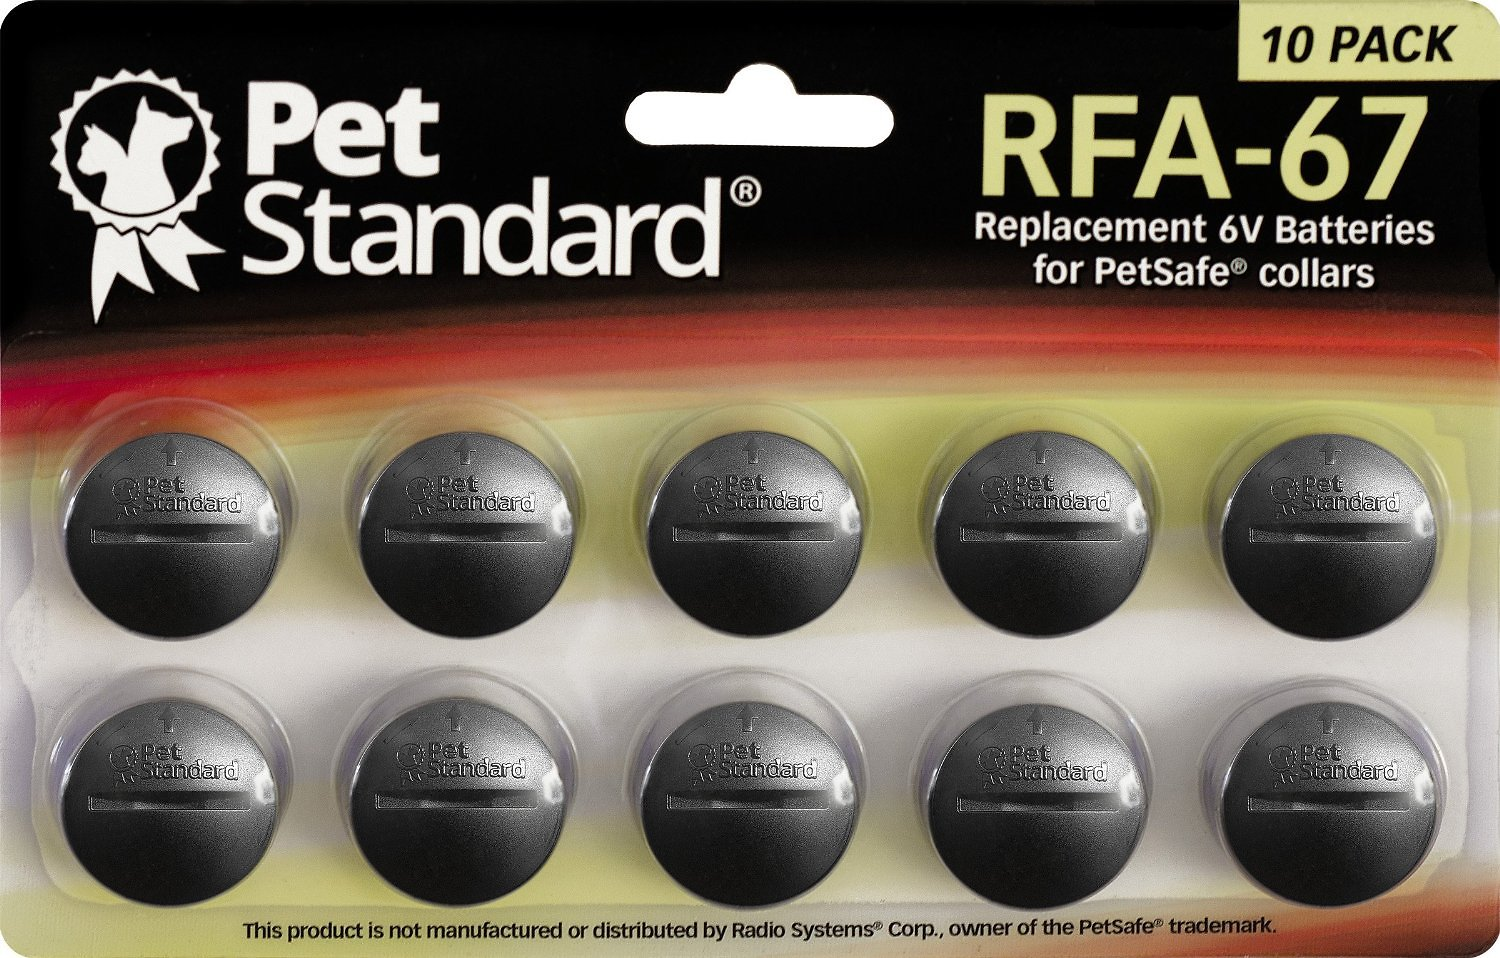 Pet Standard Rfa 67 Replacement 6v Batteries For Petsafe Collars 10 Pack Chewy